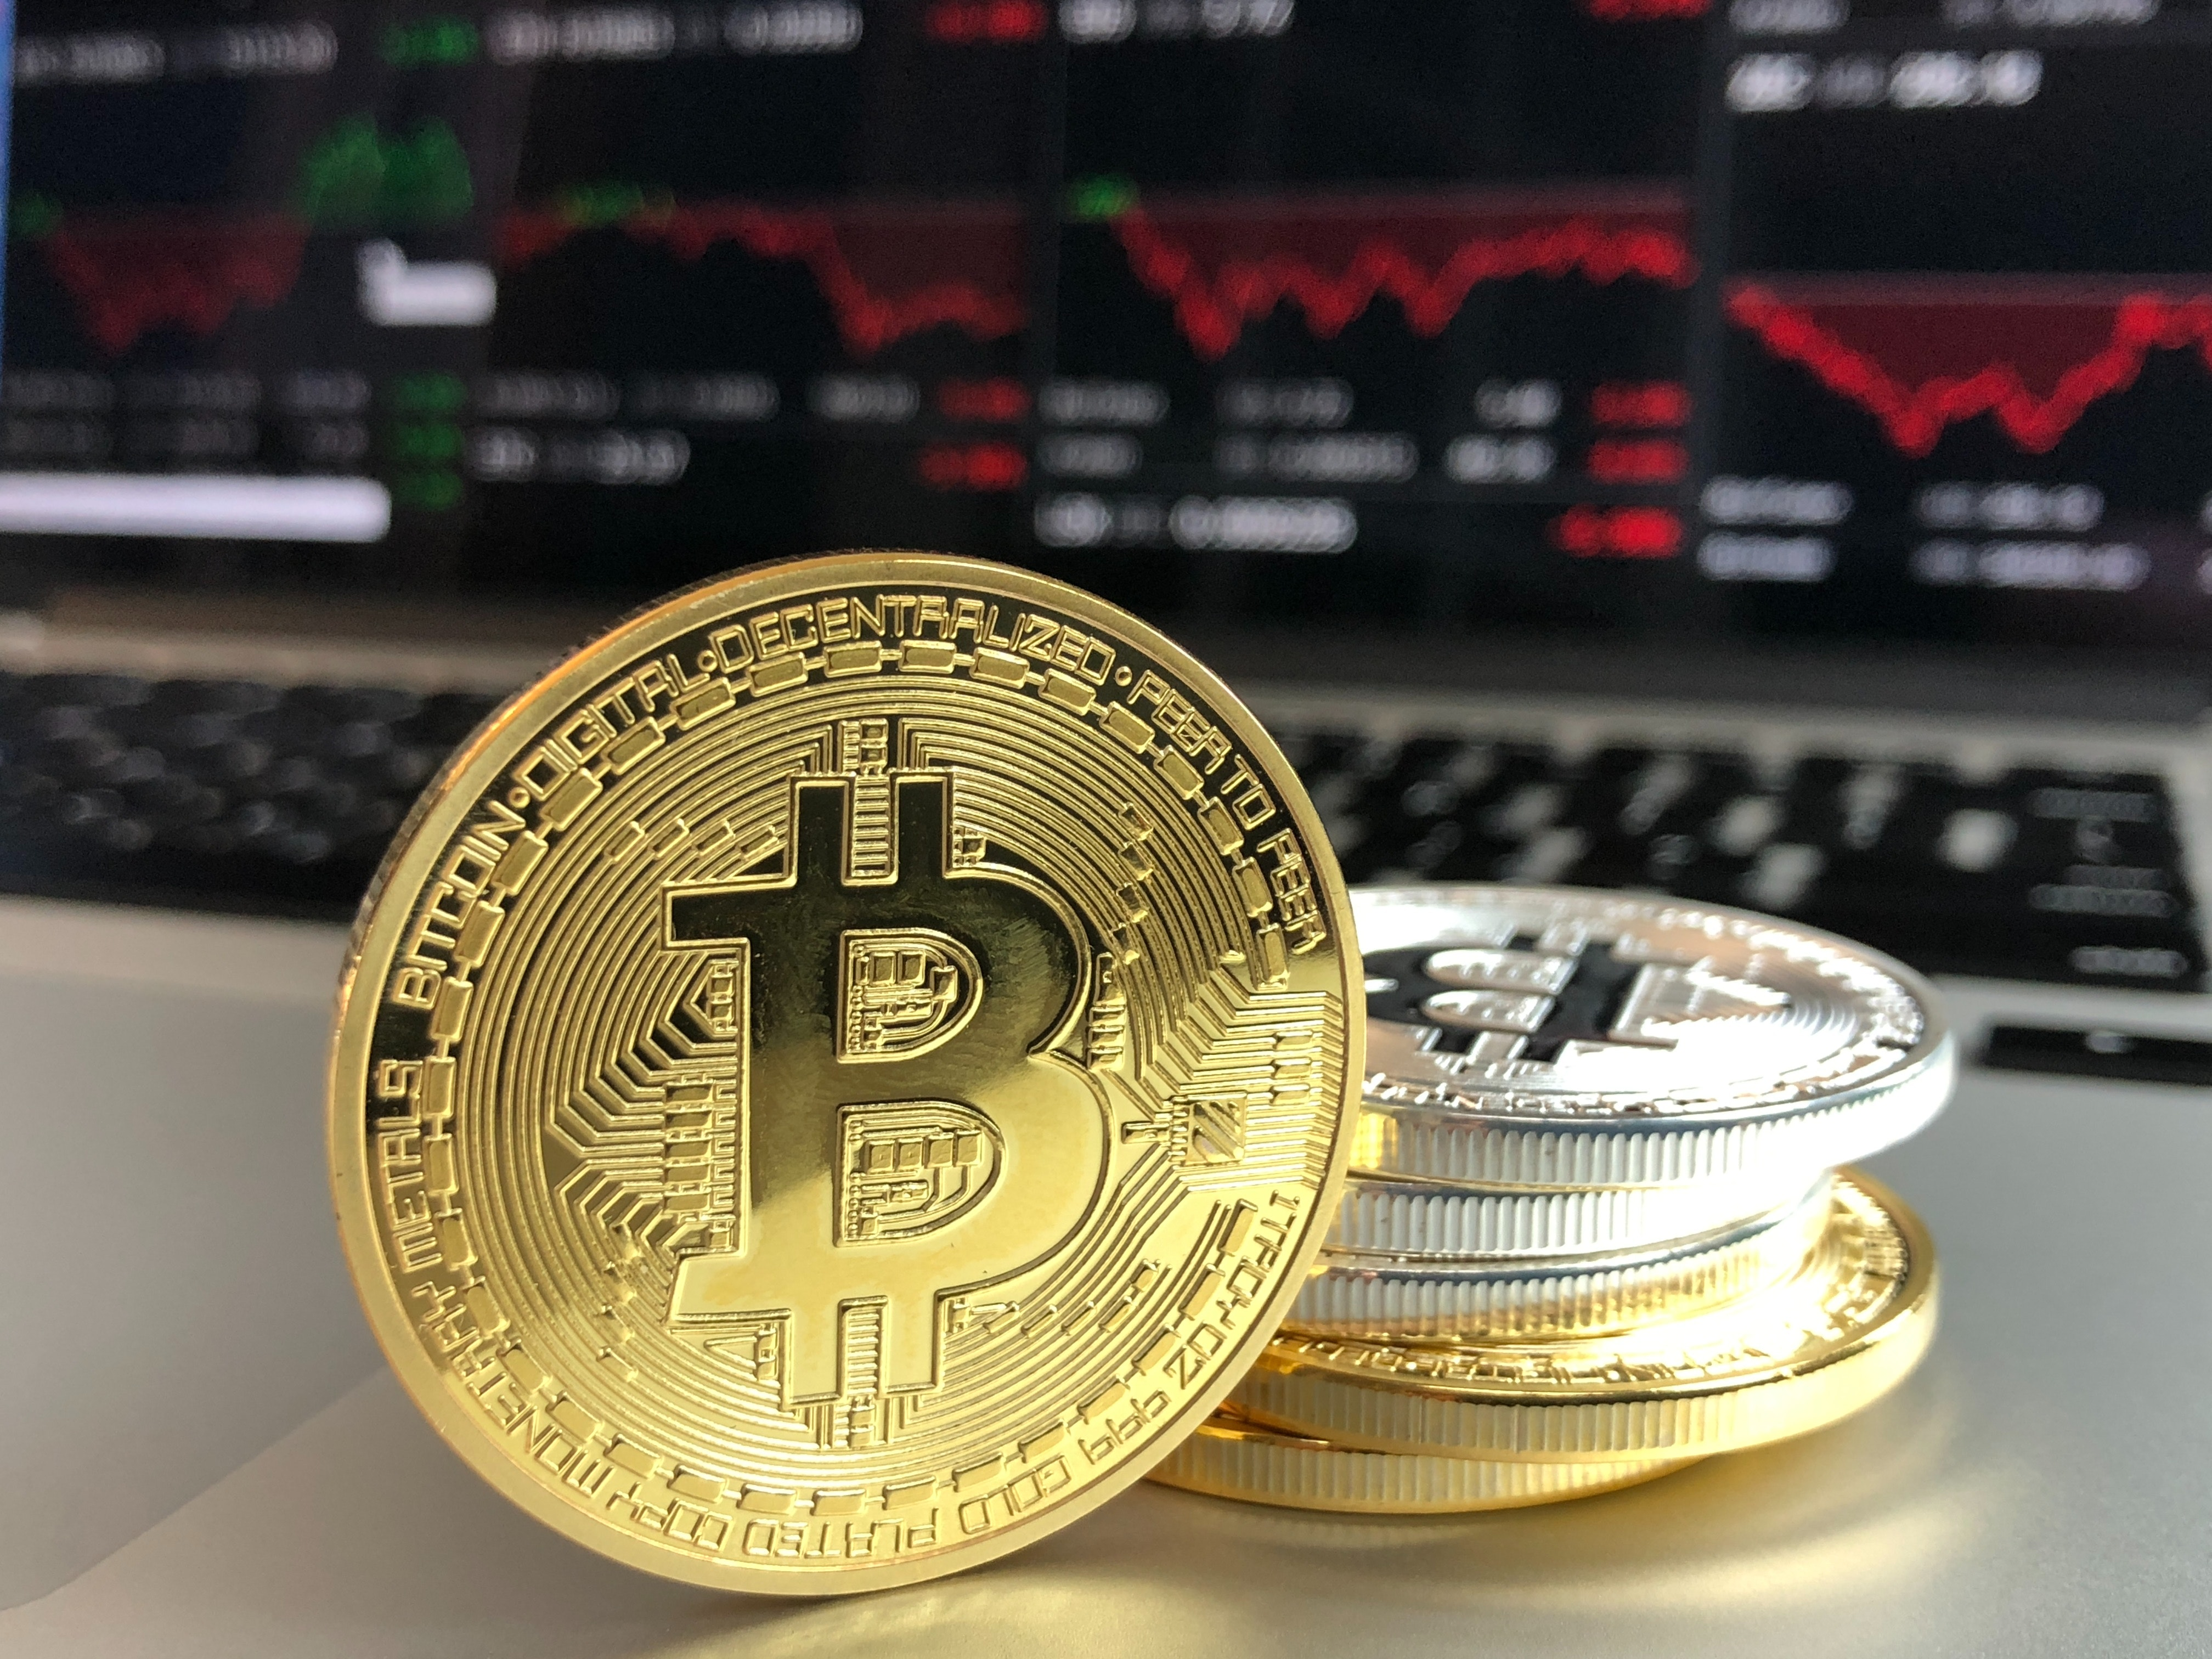 Gold and silver bitcoins photo